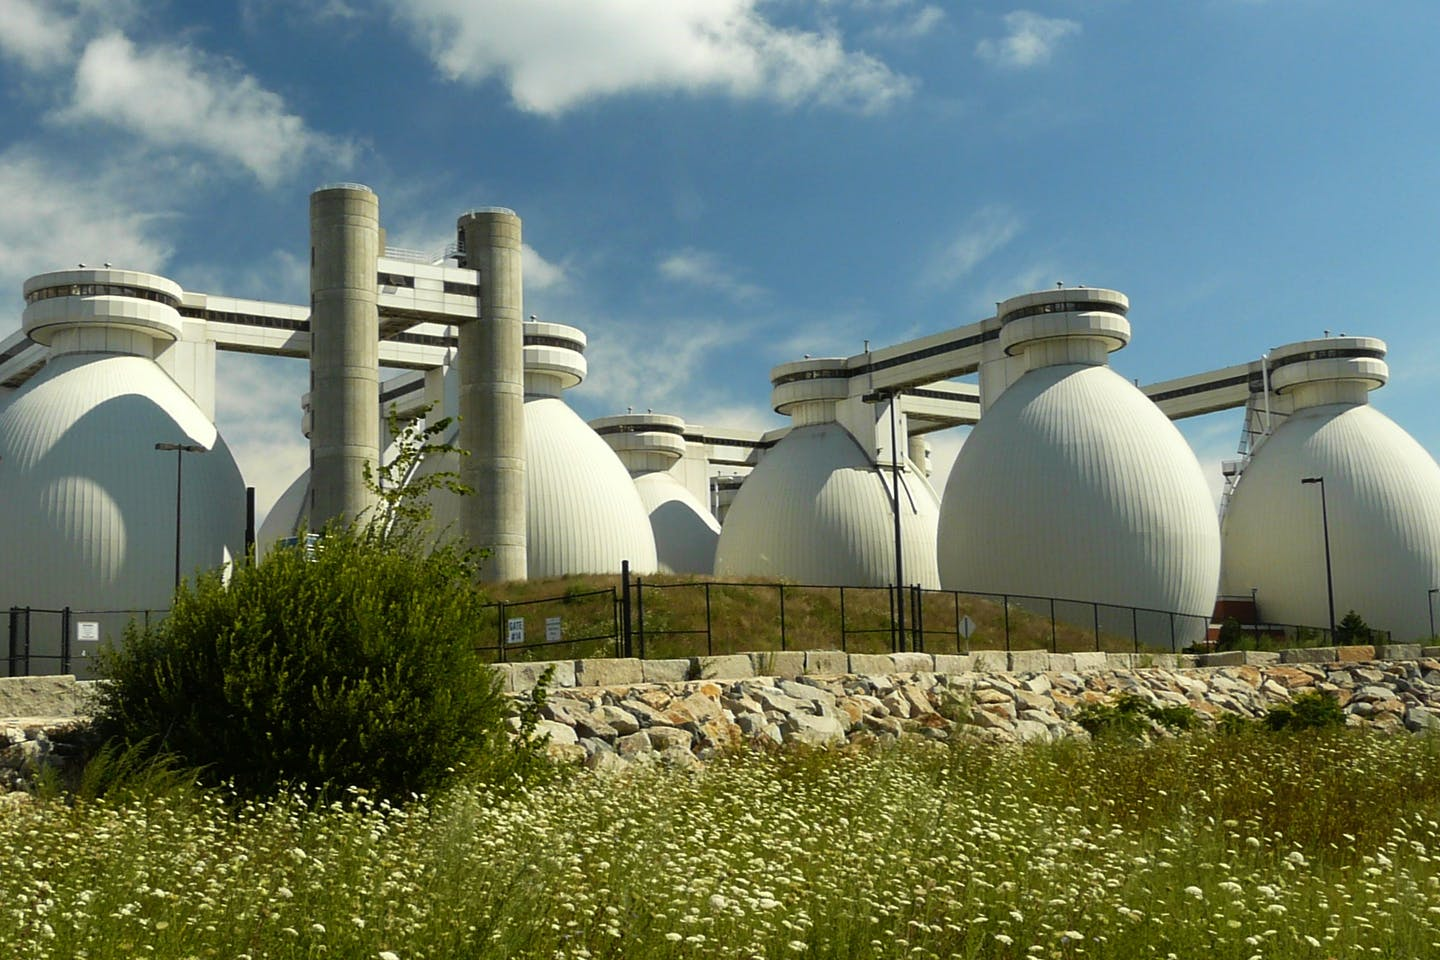 Deer Island Wastewater Treatment Plant number 2 in Winthrop, Massachusetts, USA